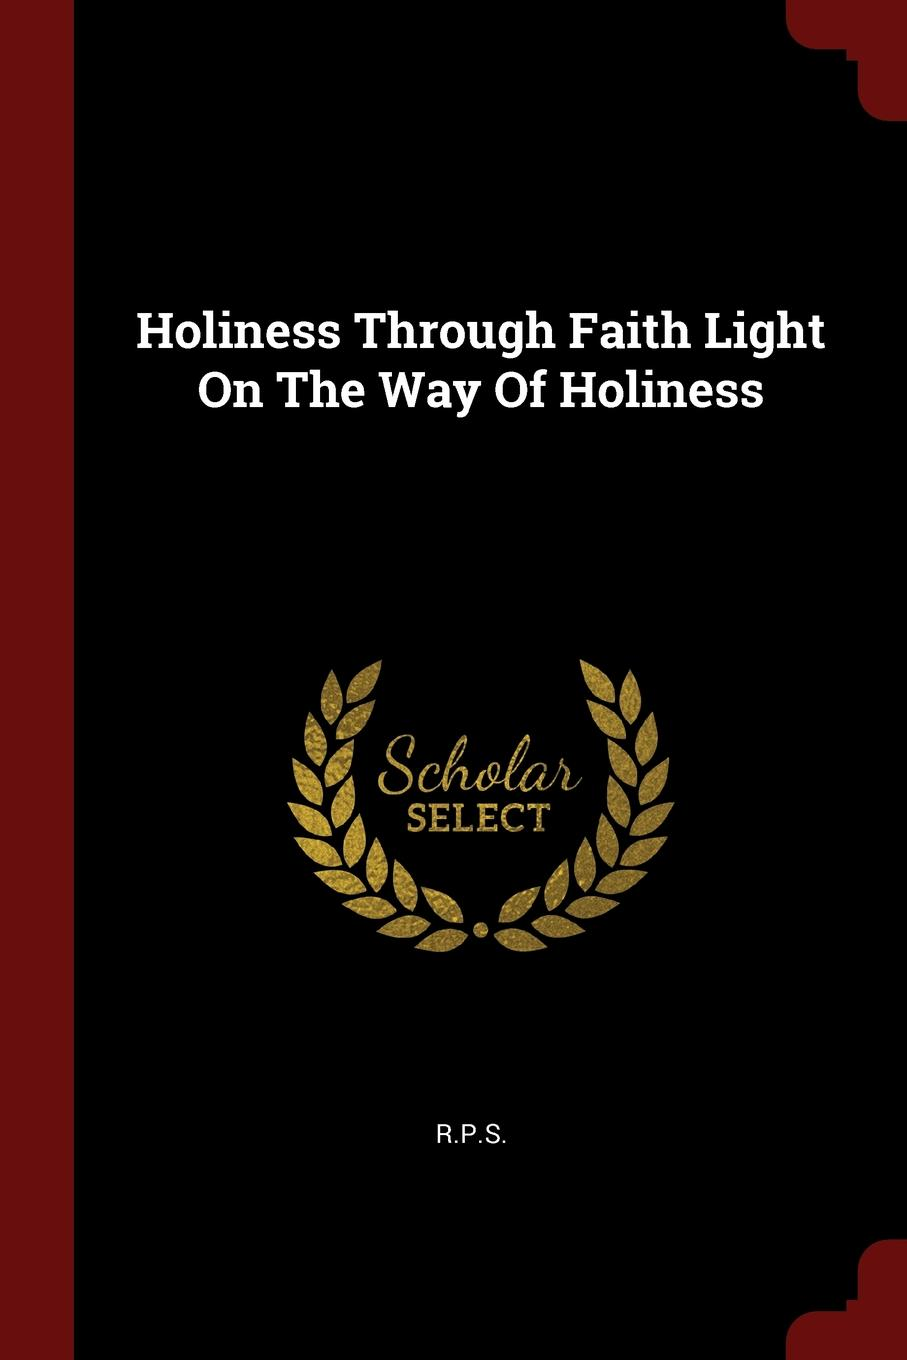 Holiness Through Faith Light On The Way Of Holiness